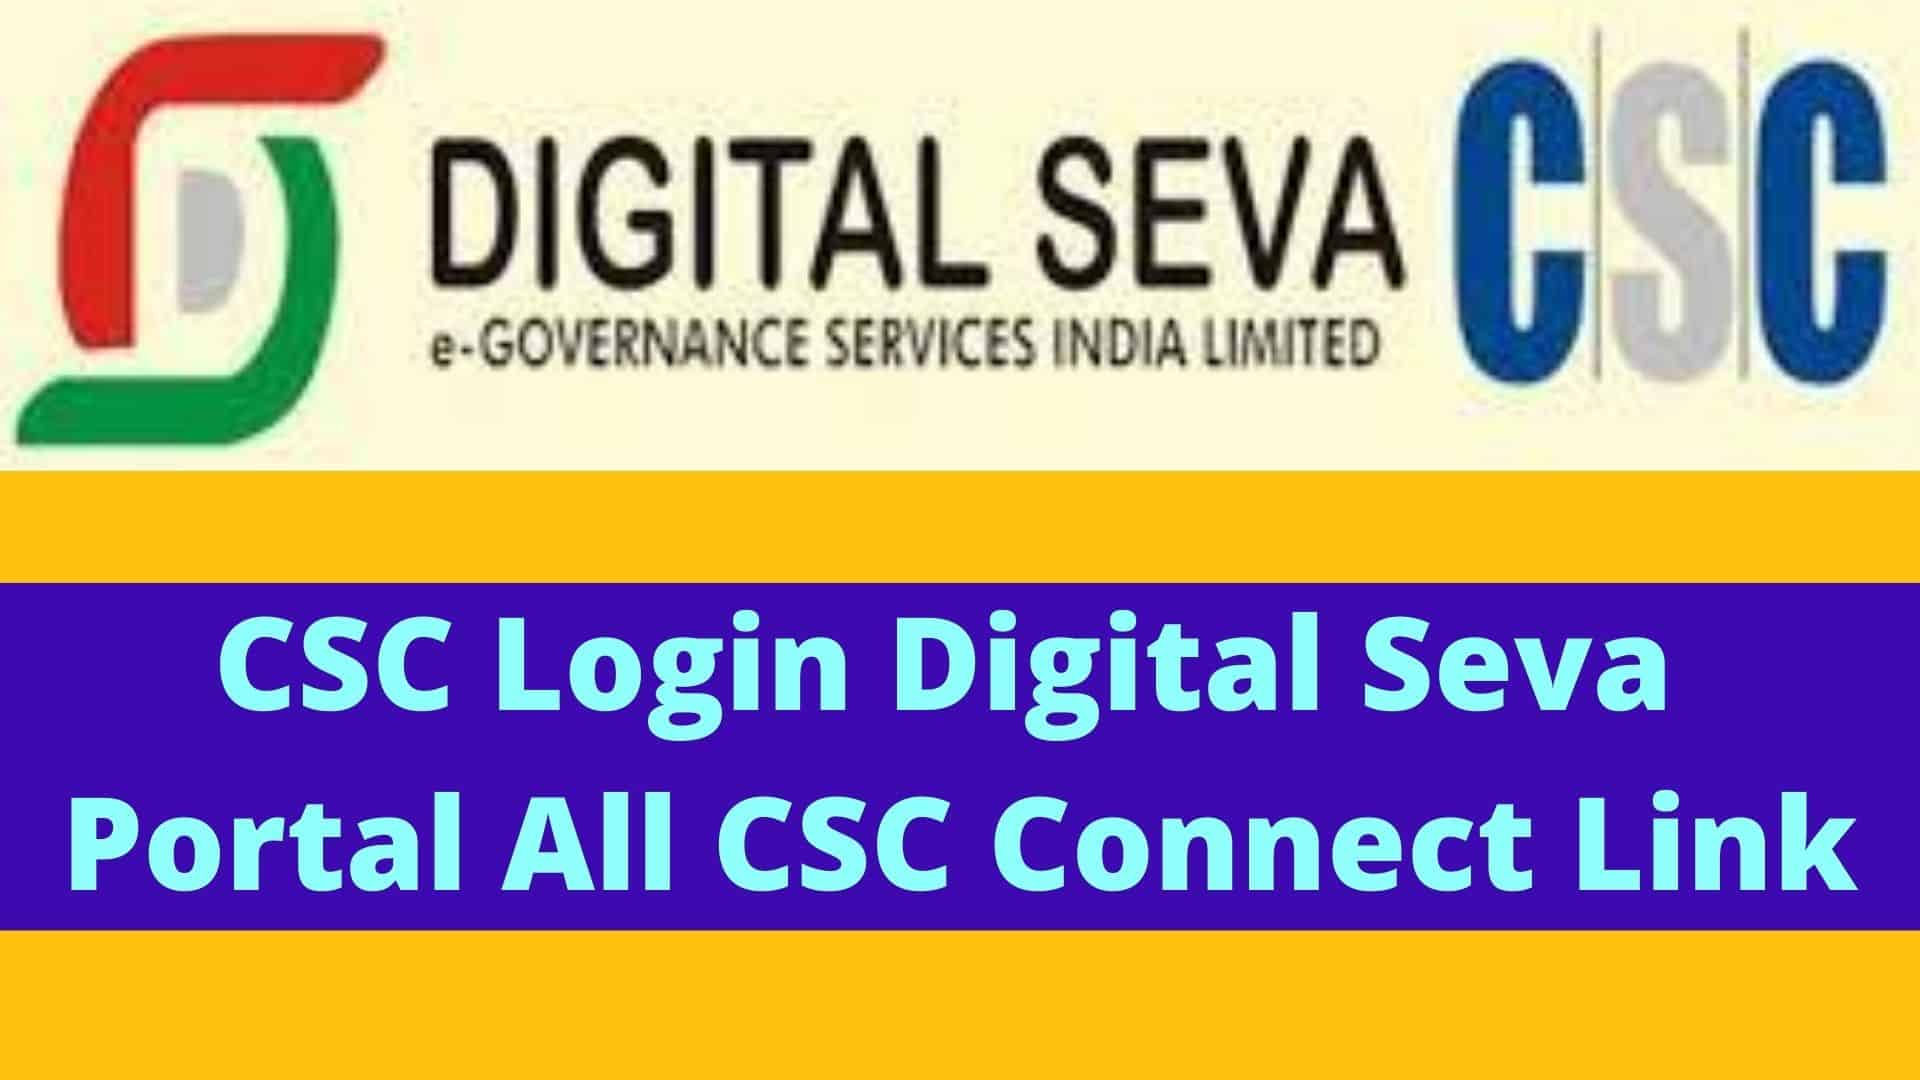 CSC Login Digital Seva Portal All CSC Connect Link